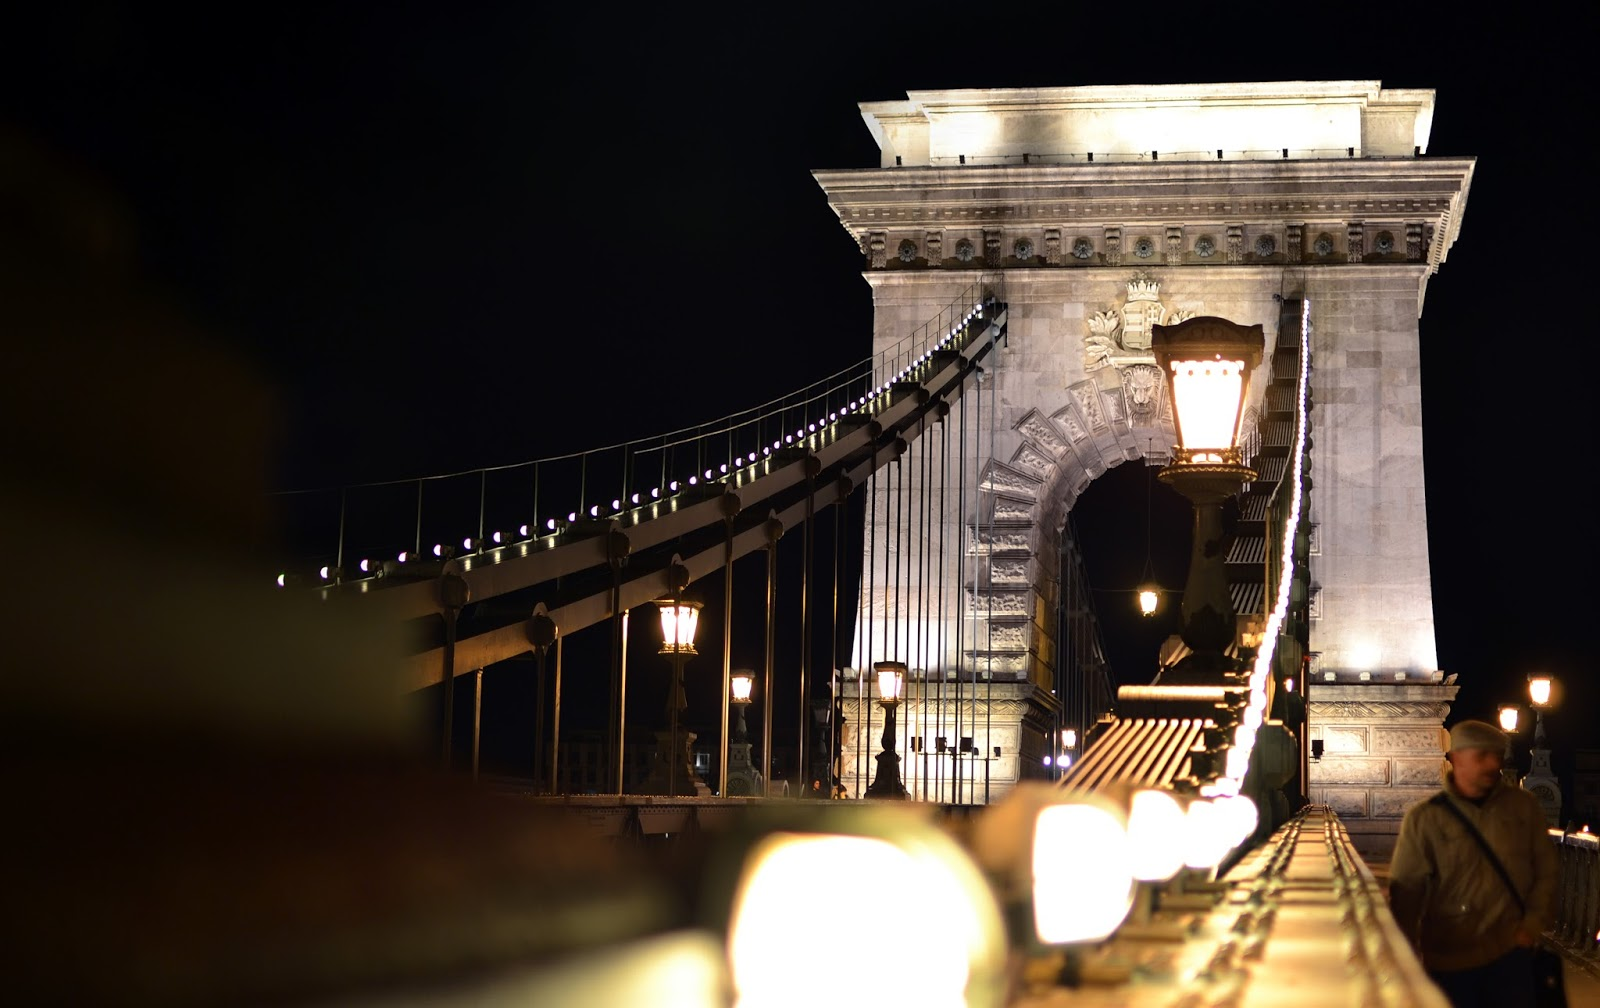 Budapest, photography, night time, architecture, travel, blog, adventure, exploration, chain bridge, Danube,